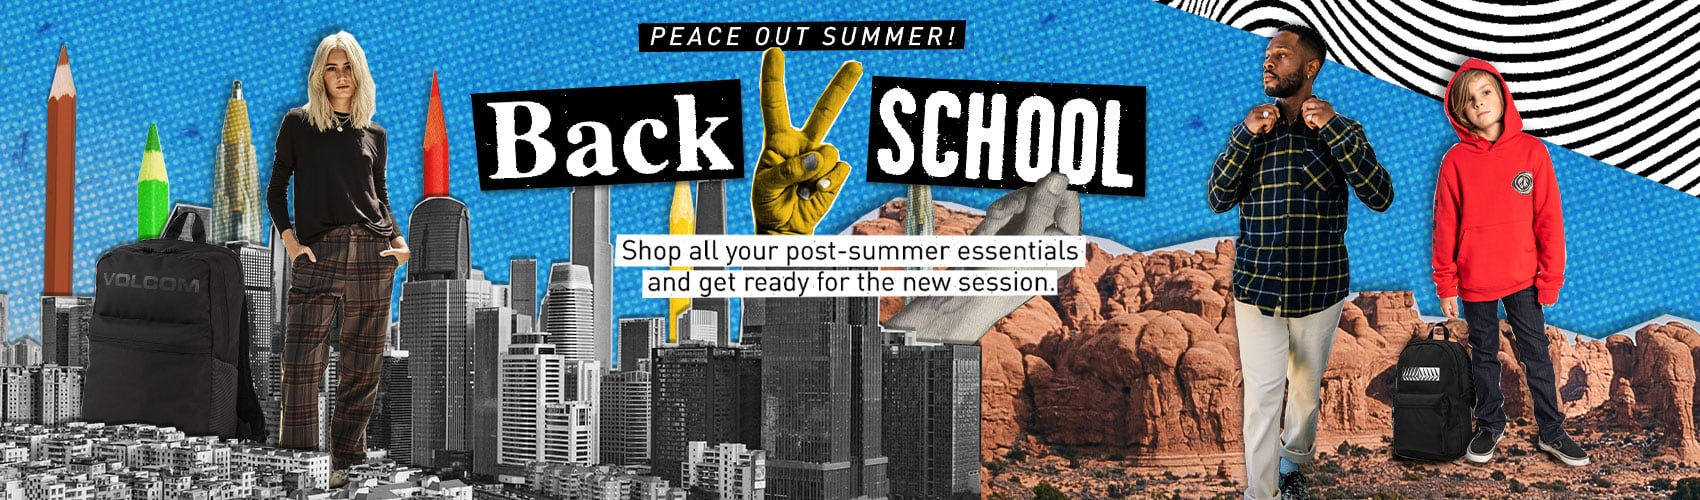 peace out summer back to school